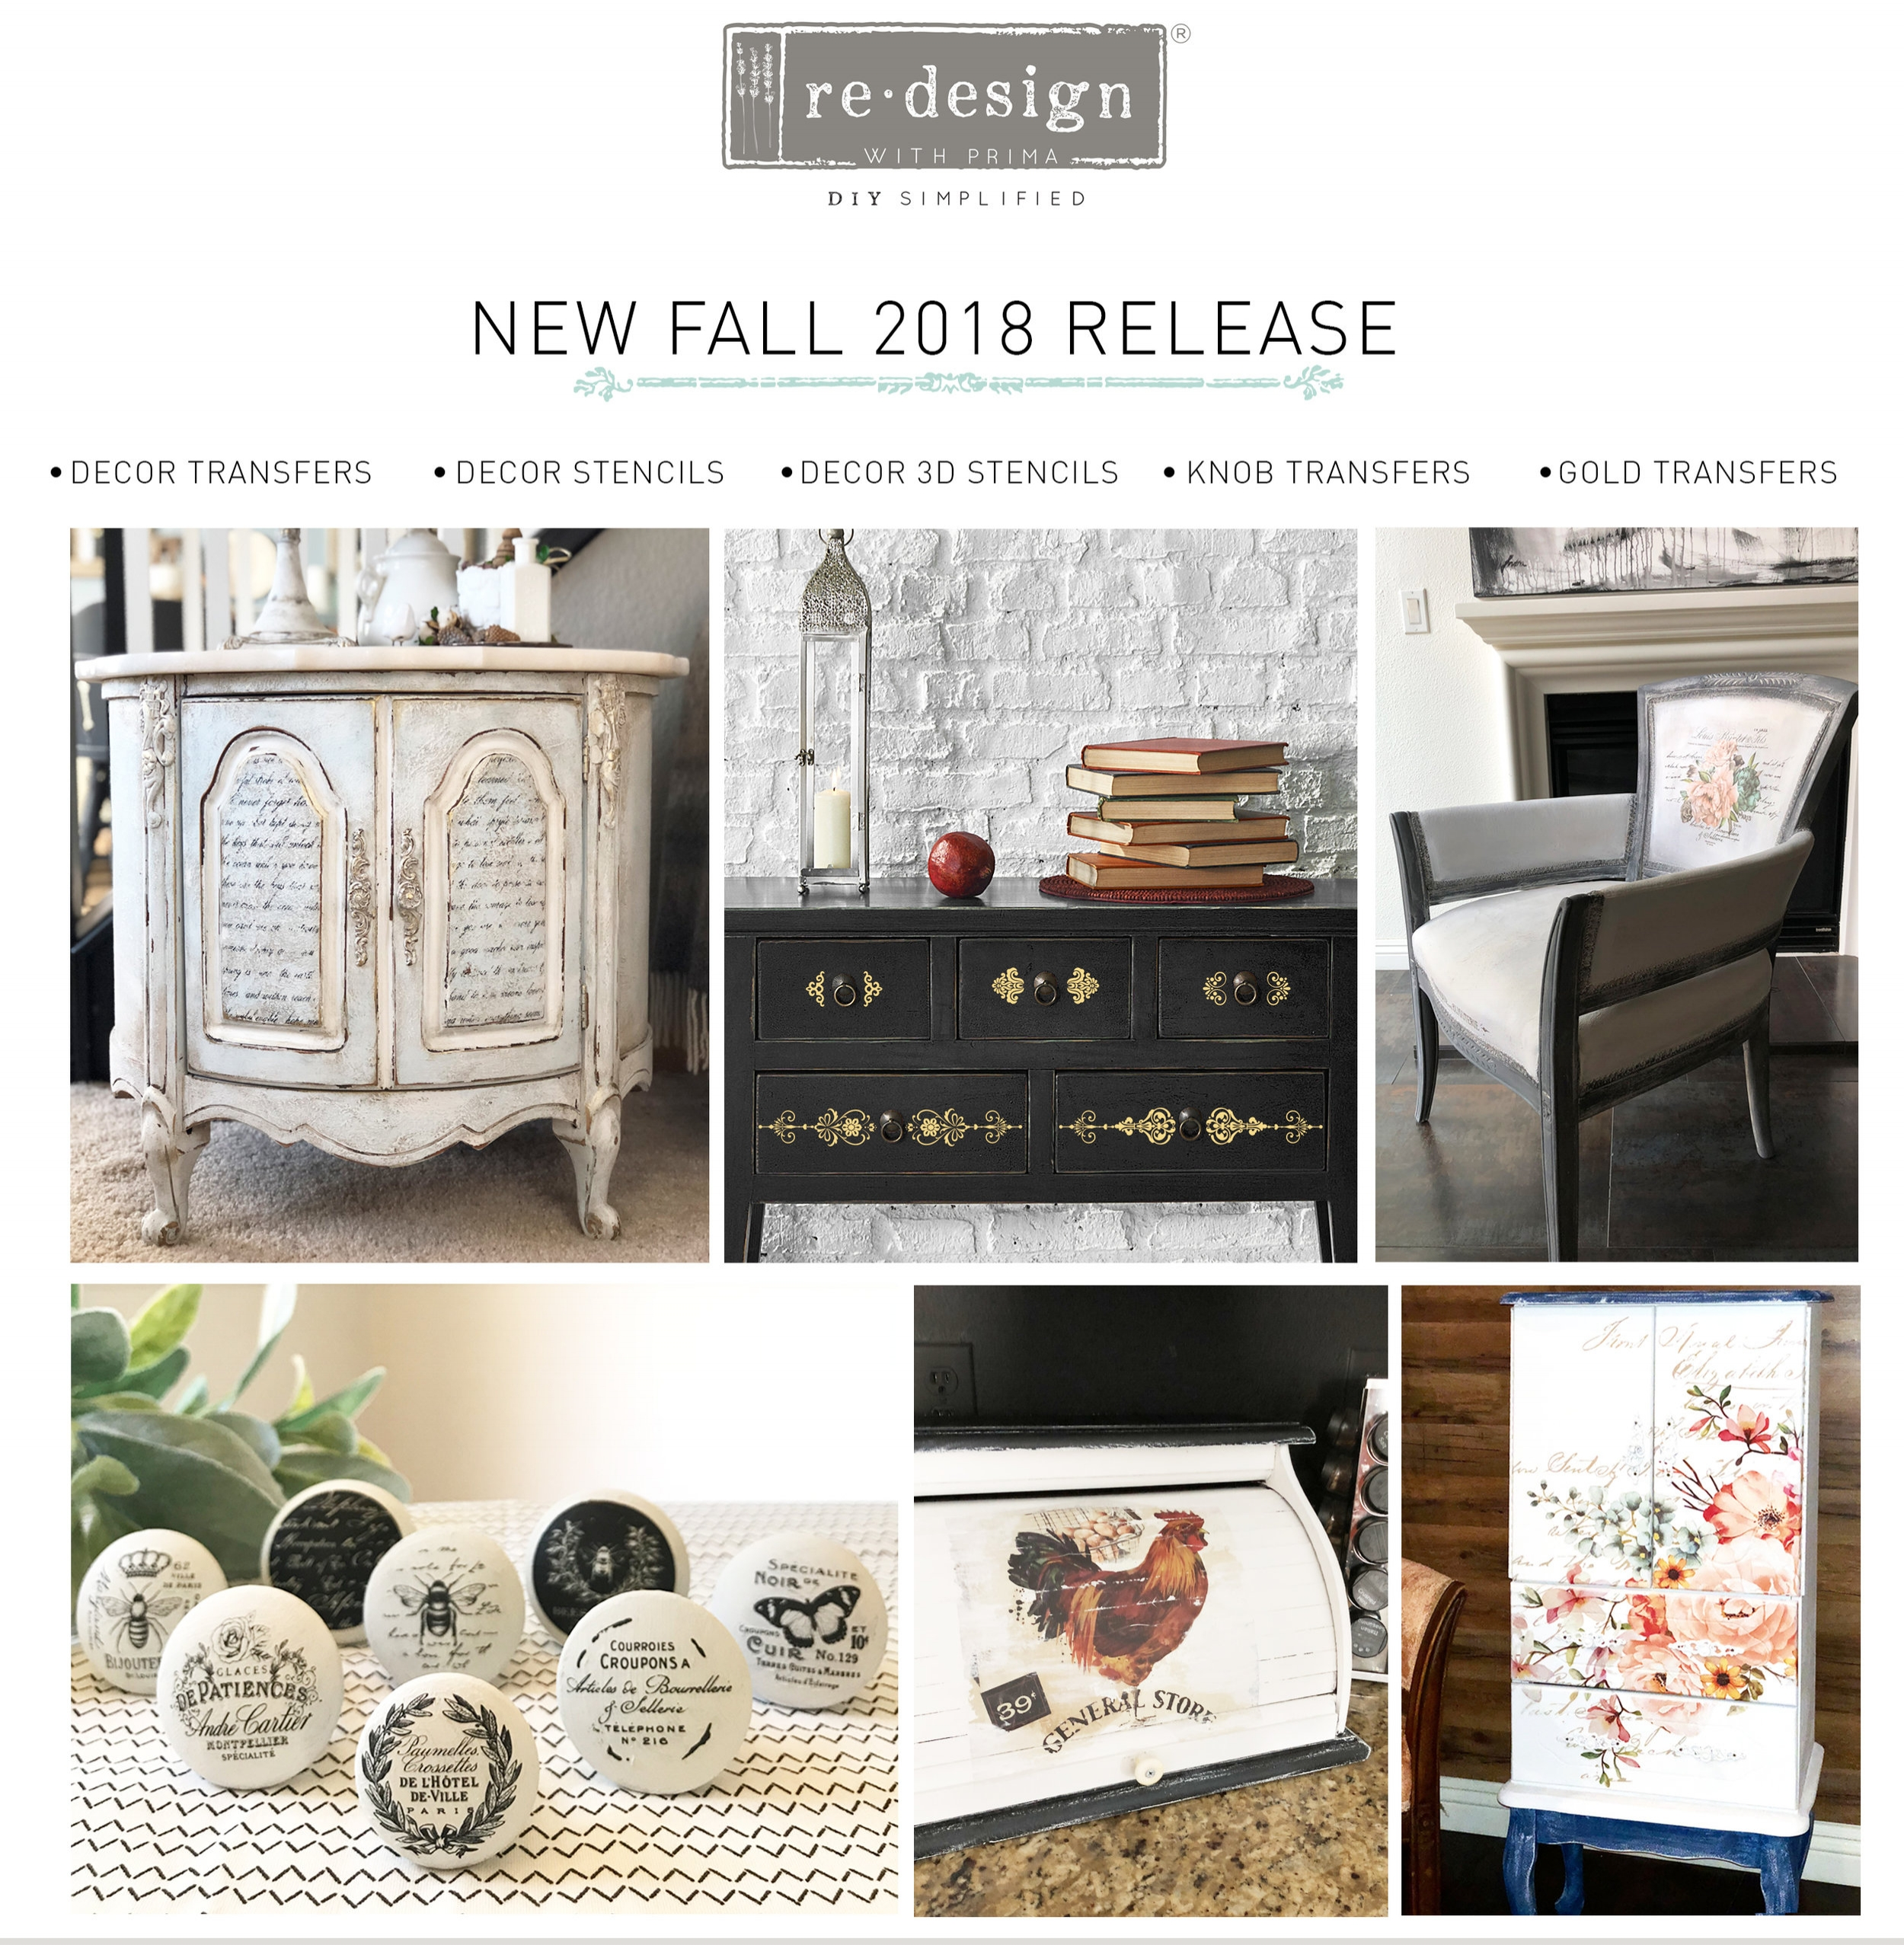 We are bursting at the seams with excitement about our new Fall releases for [re]design with prima®! This is part 1 of our release, showcasing new and innovative transfers we designed for all of you [re]designers! Let's take a look at these fab new products...